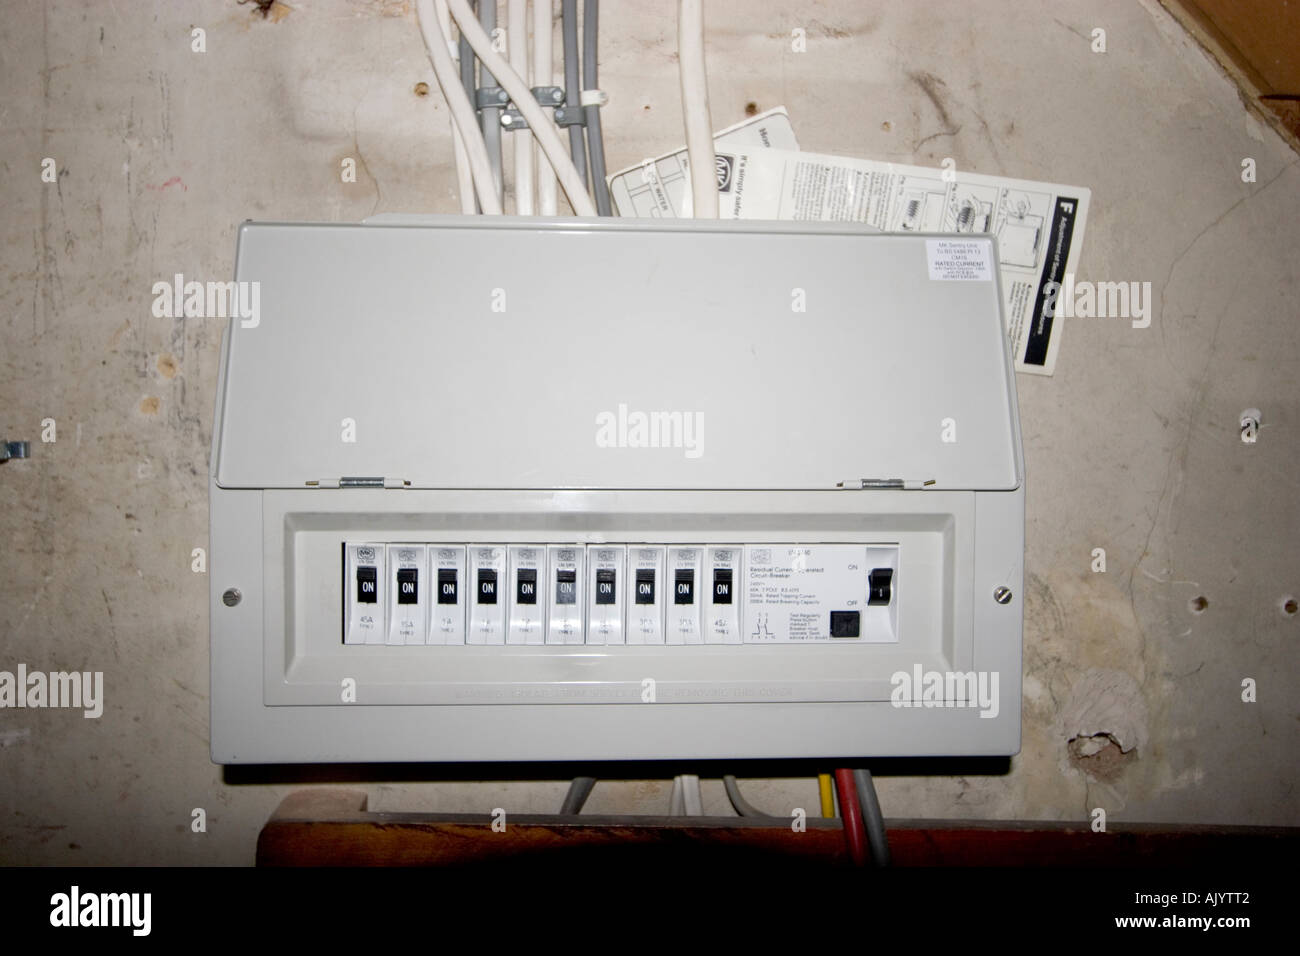 uk electrical fuse box under stairs of house AJYTT2 uk electrical fuse box under stairs of house stock photo, royalty house fuse box at bayanpartner.co